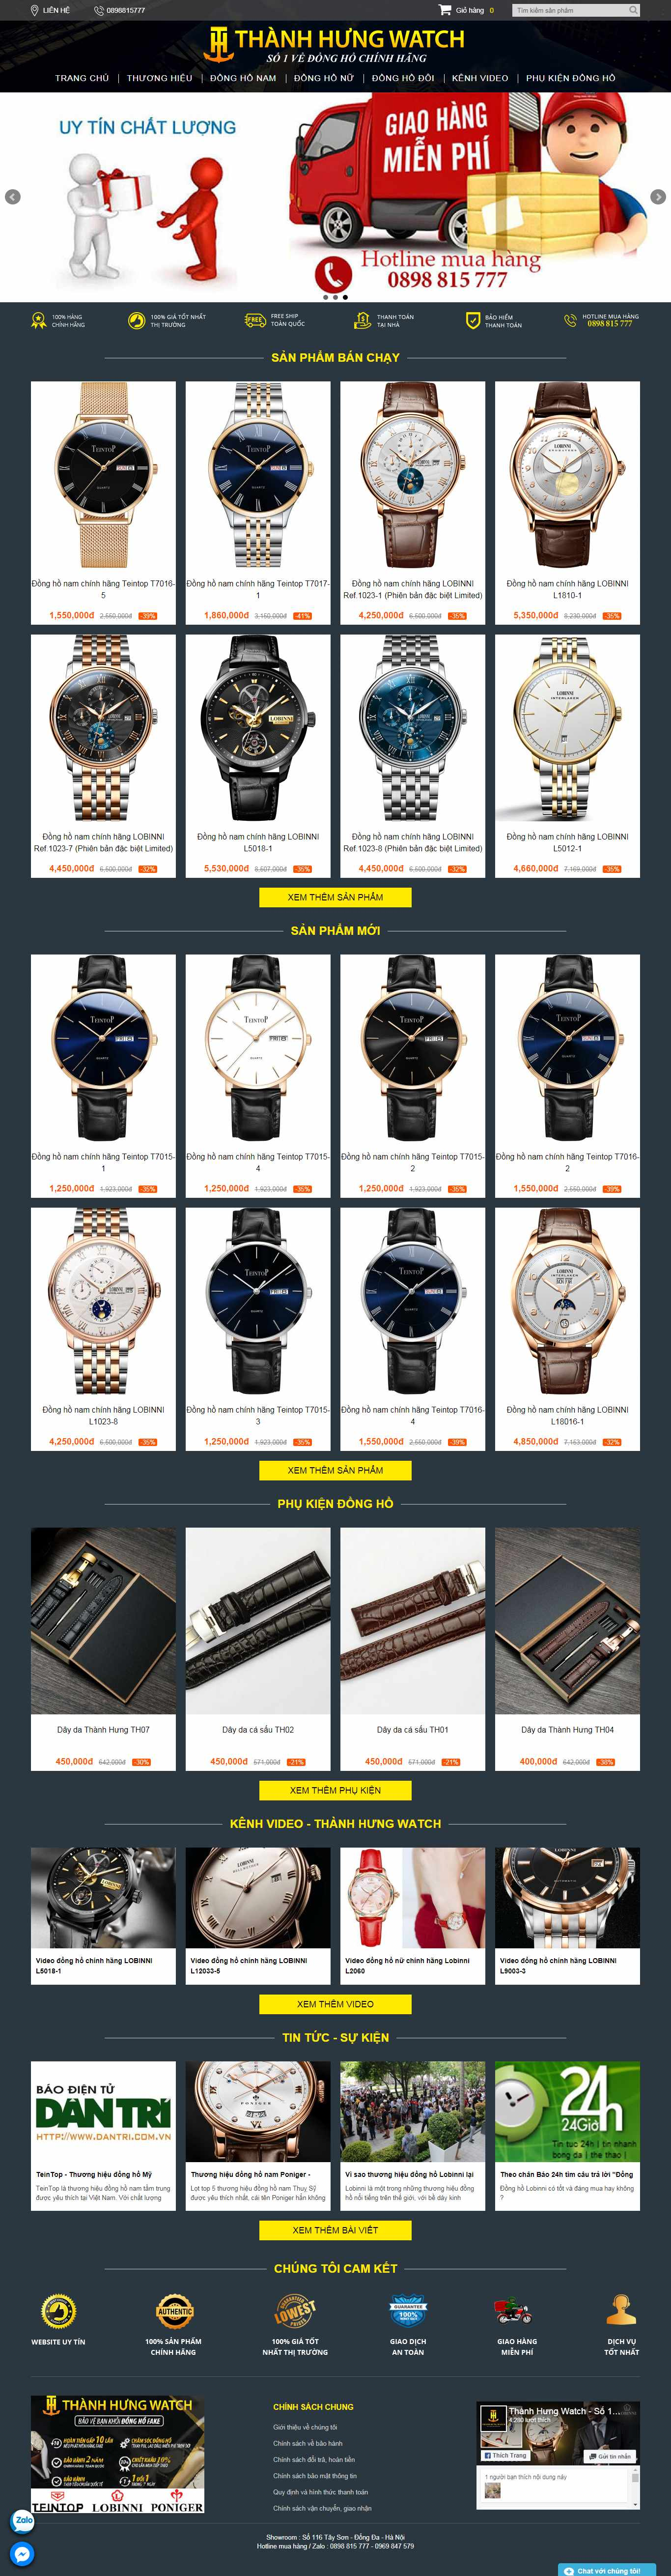 Thiết kế Website uy tín - thanhhungwatch.vn